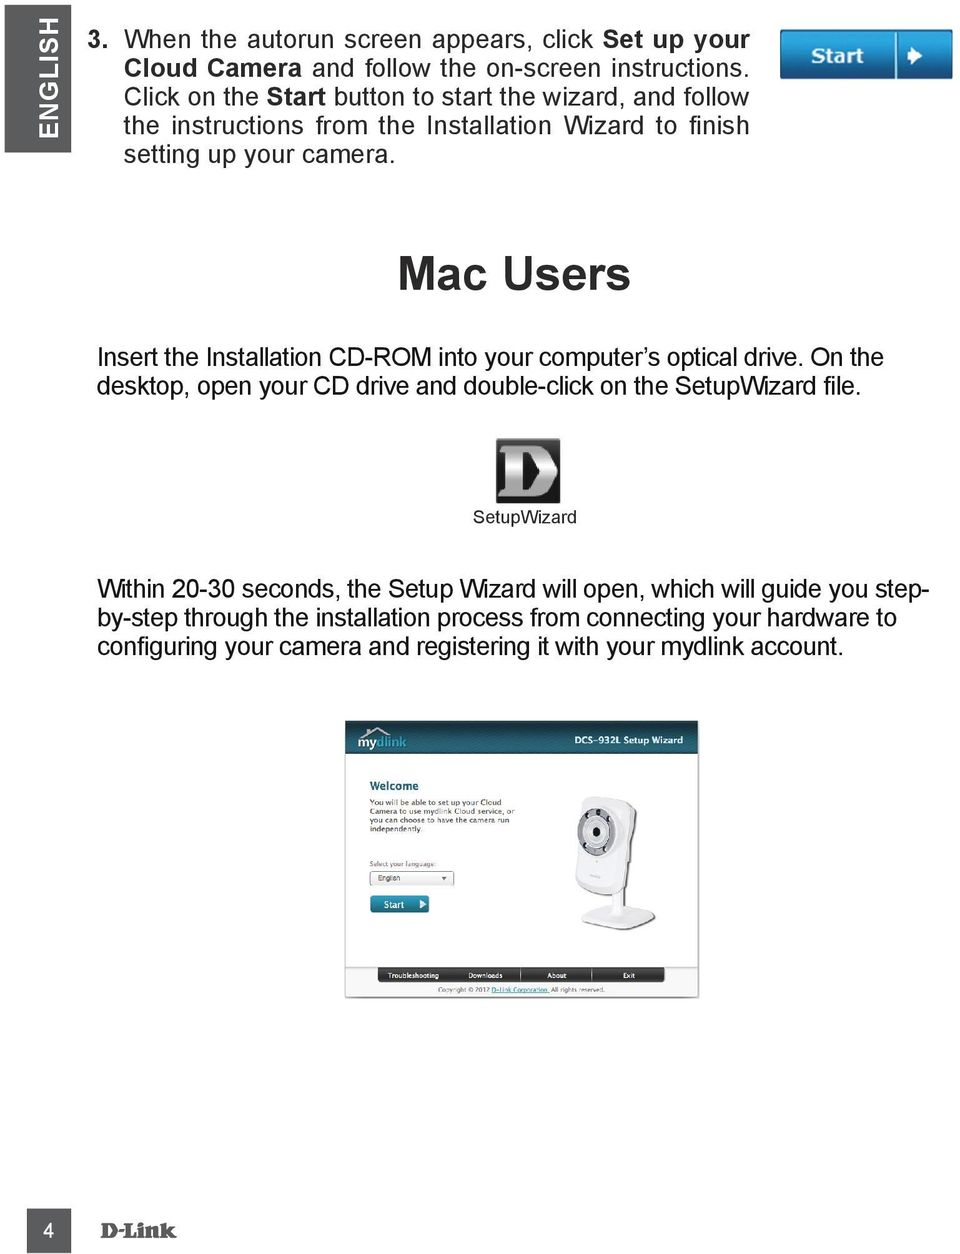 Mac Users Insert the Installation CD-ROM into your computer s optical drive. On the desktop, open your CD drive and double-click on the SetupWizard file.